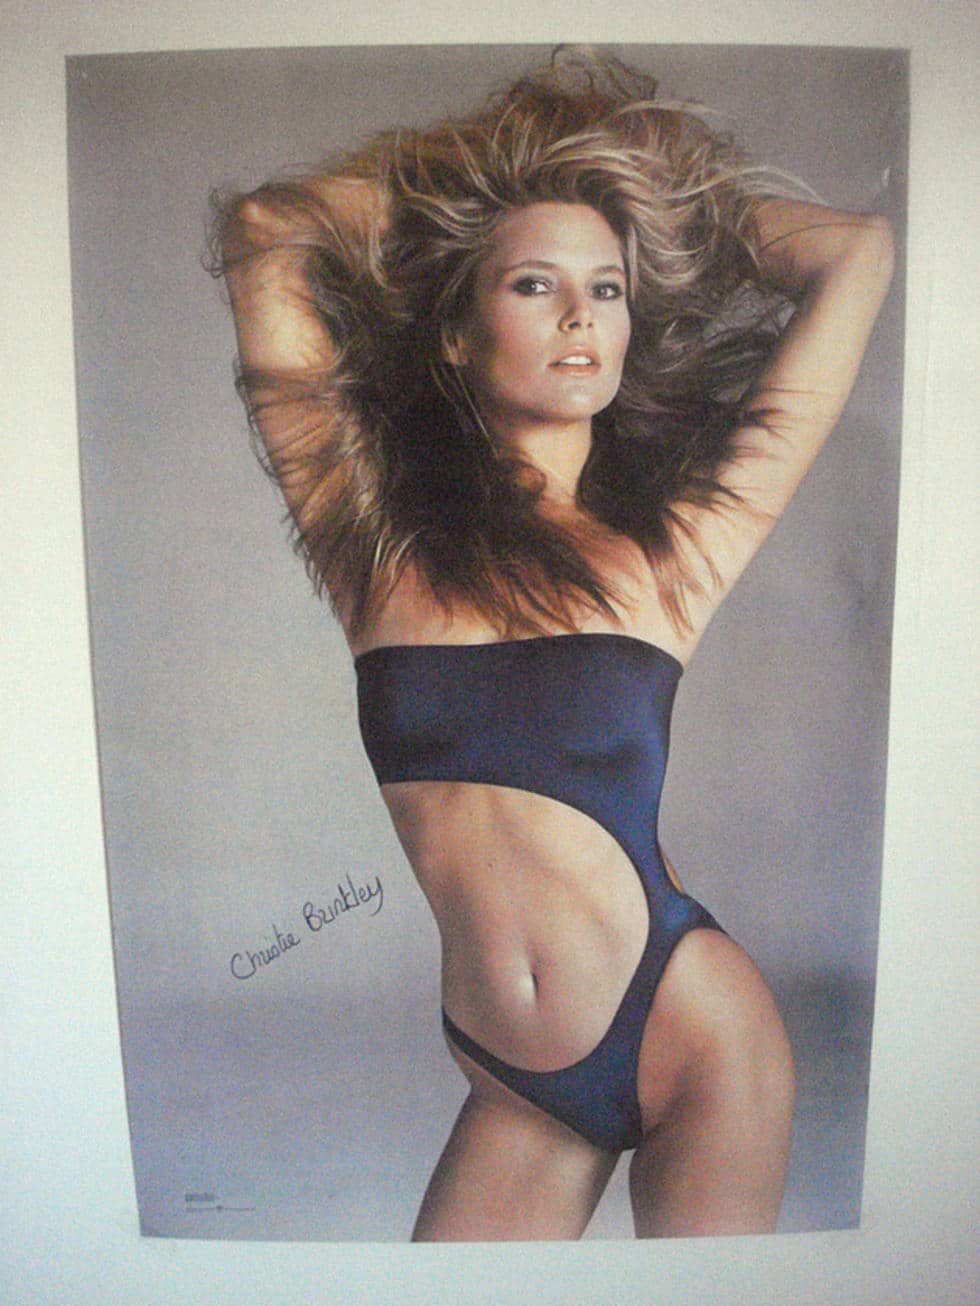 posters of the 70s and 80s